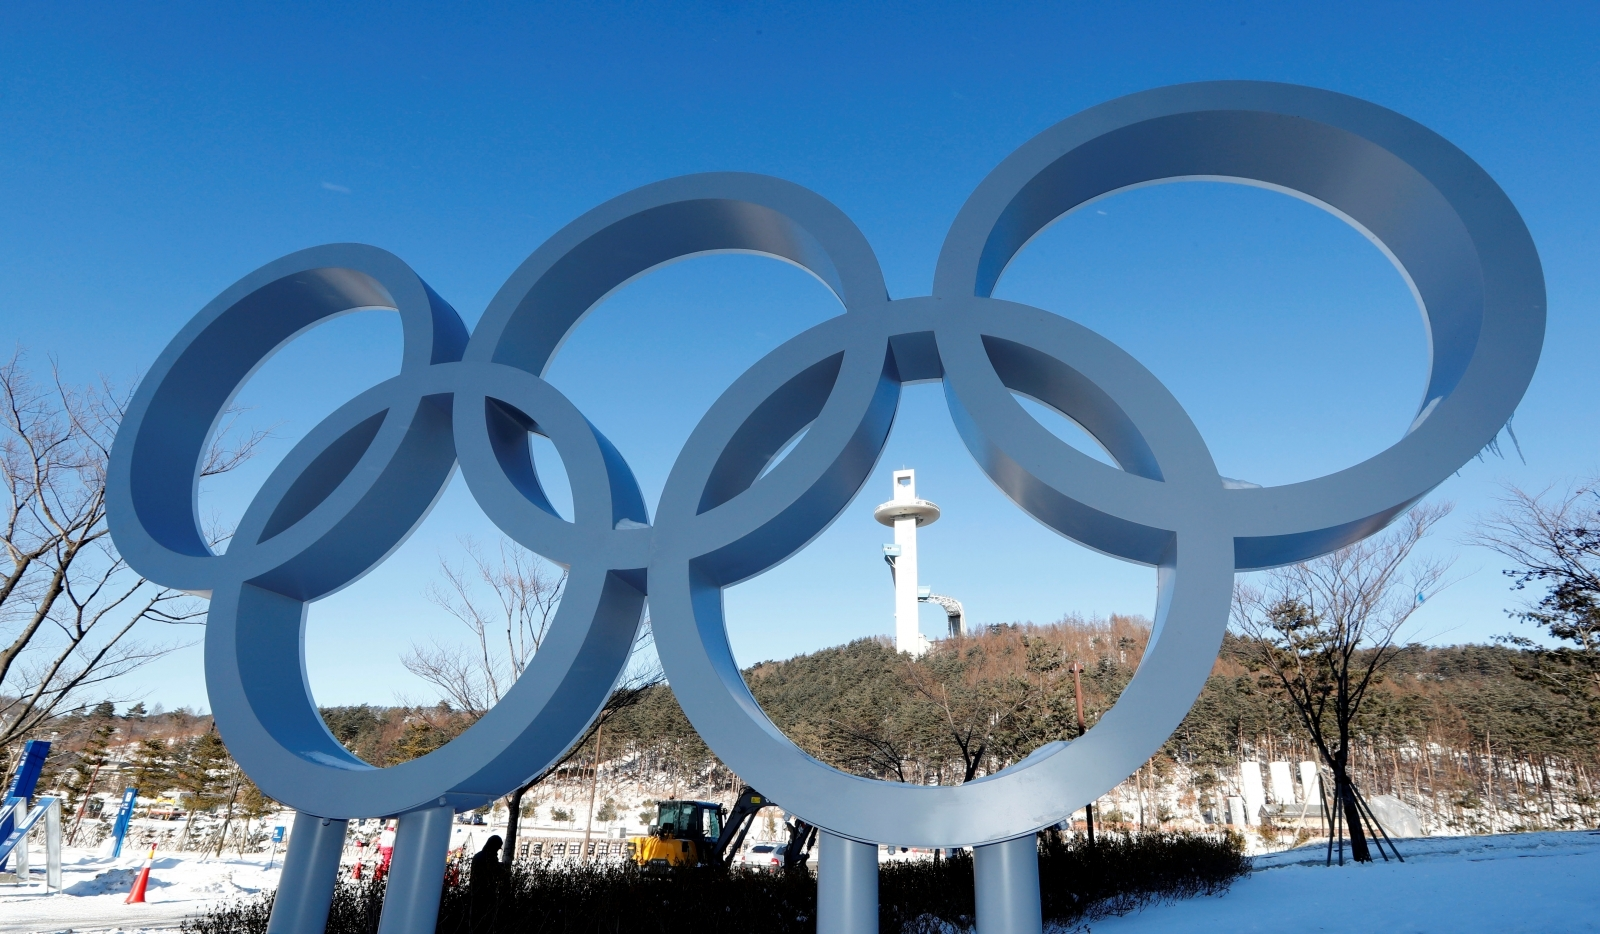 The Olympic rings at the Alpensia resort for the upcoming 2018 Pyeongchang Winter Olympic Games in Pyeongchang, South Korea